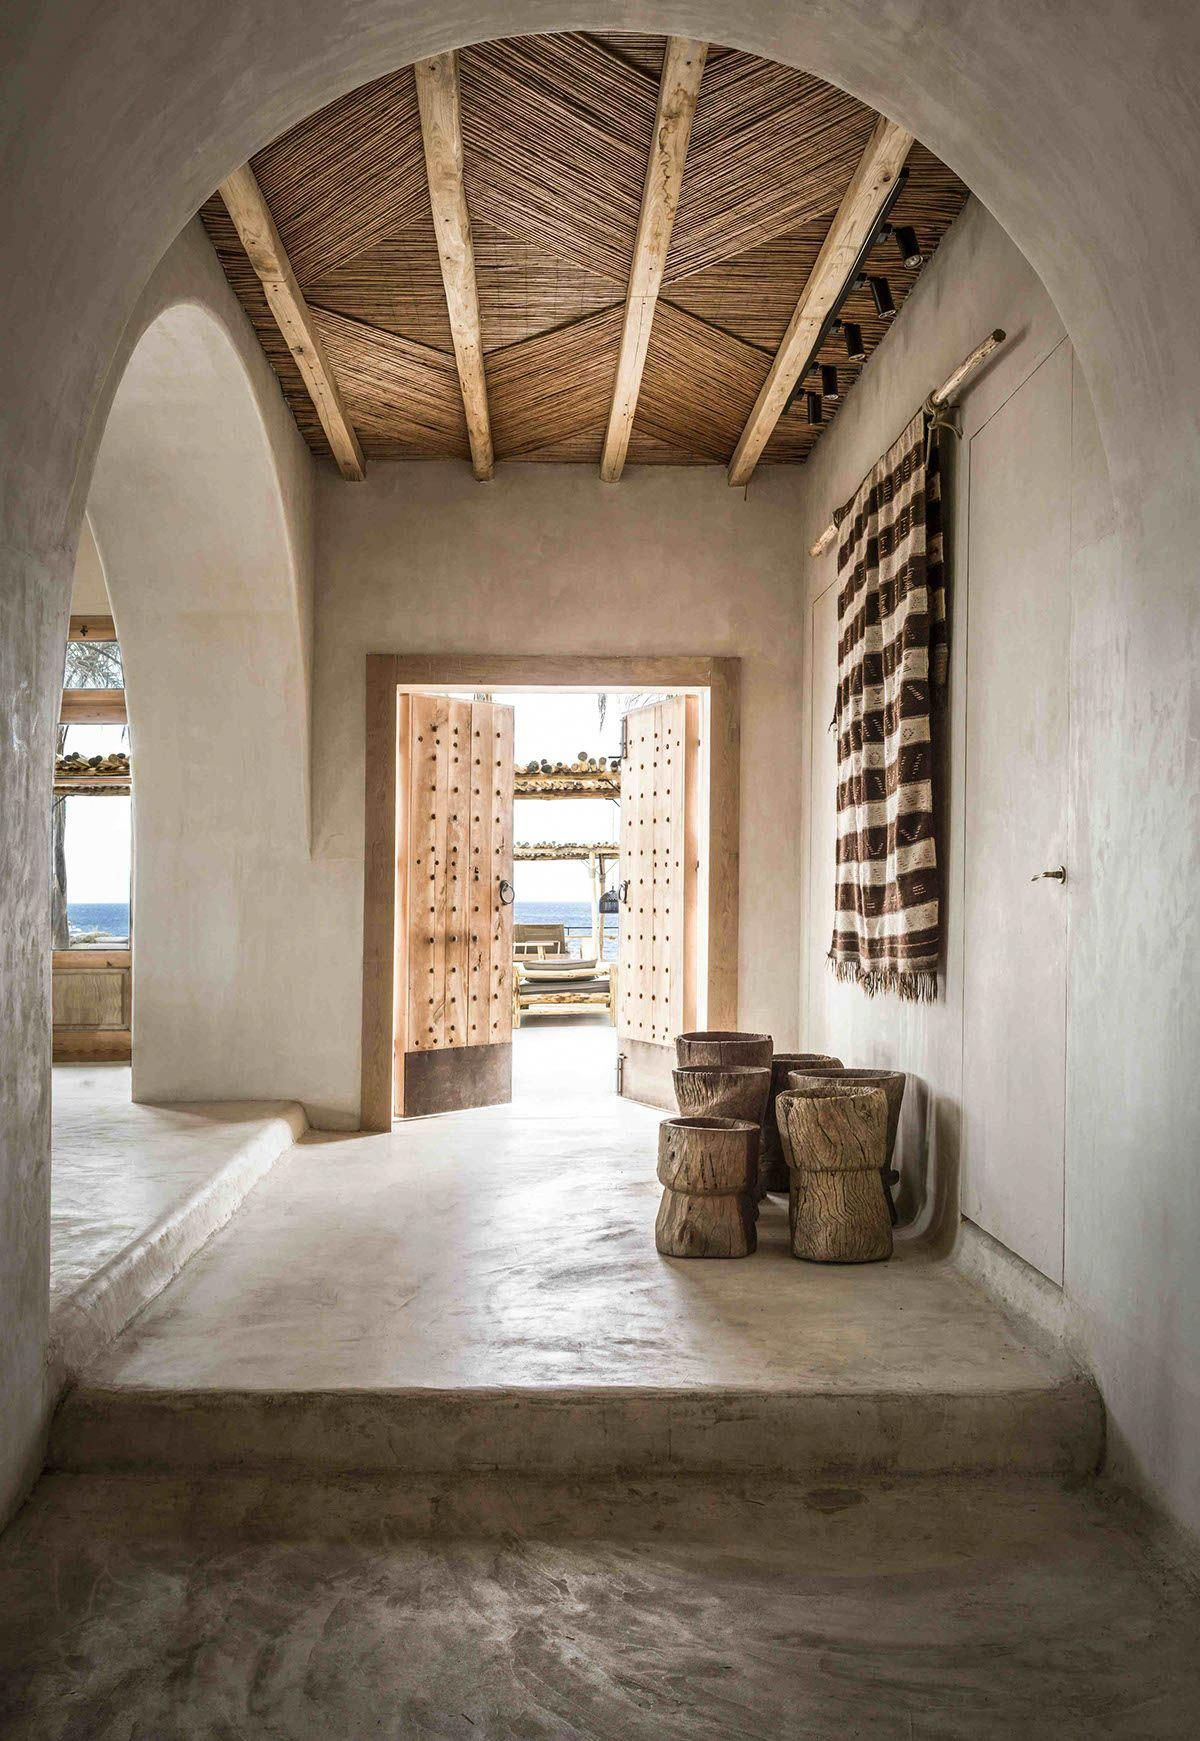 cp  escorpios mykonos is the celebration of traditional craftsmanship organic materials and  bohemian style interior design presenting tactile laid back also what   inspiring me casa decor show bathroom ideas rh pinterest